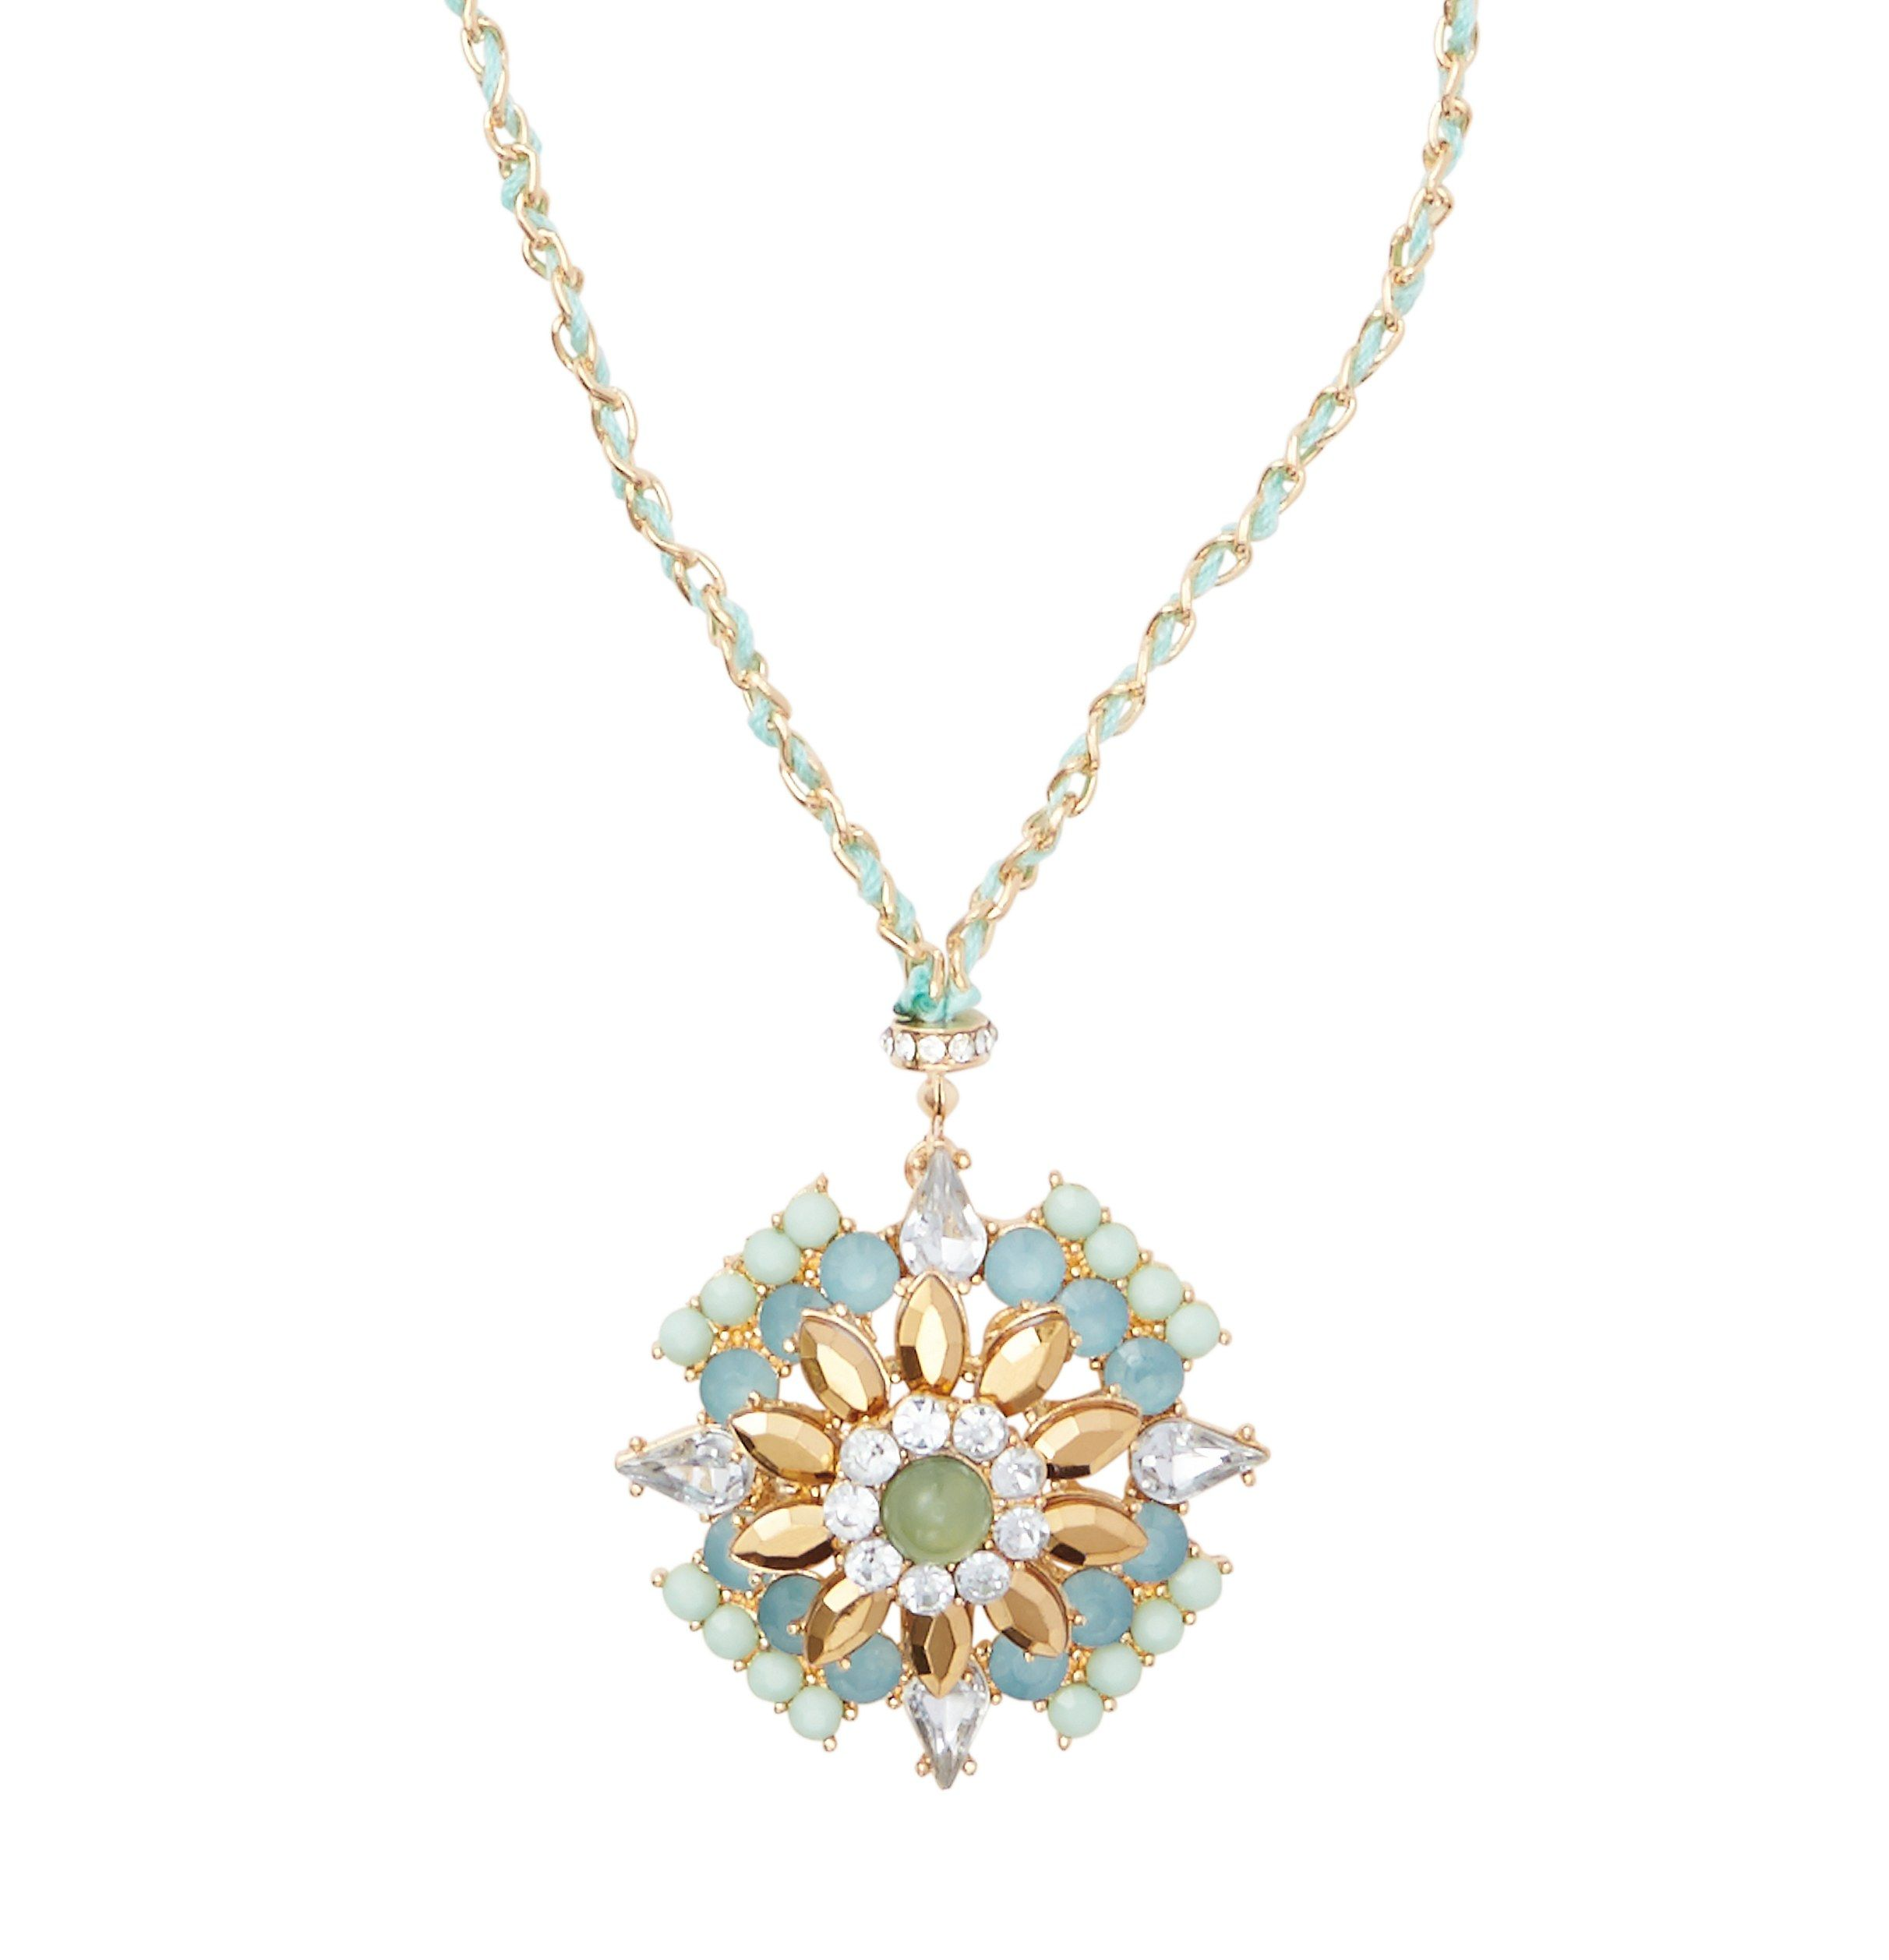 product best chandelier aqua tone everything of fashion gold aq jewelry necklace online jewellery necklaces home